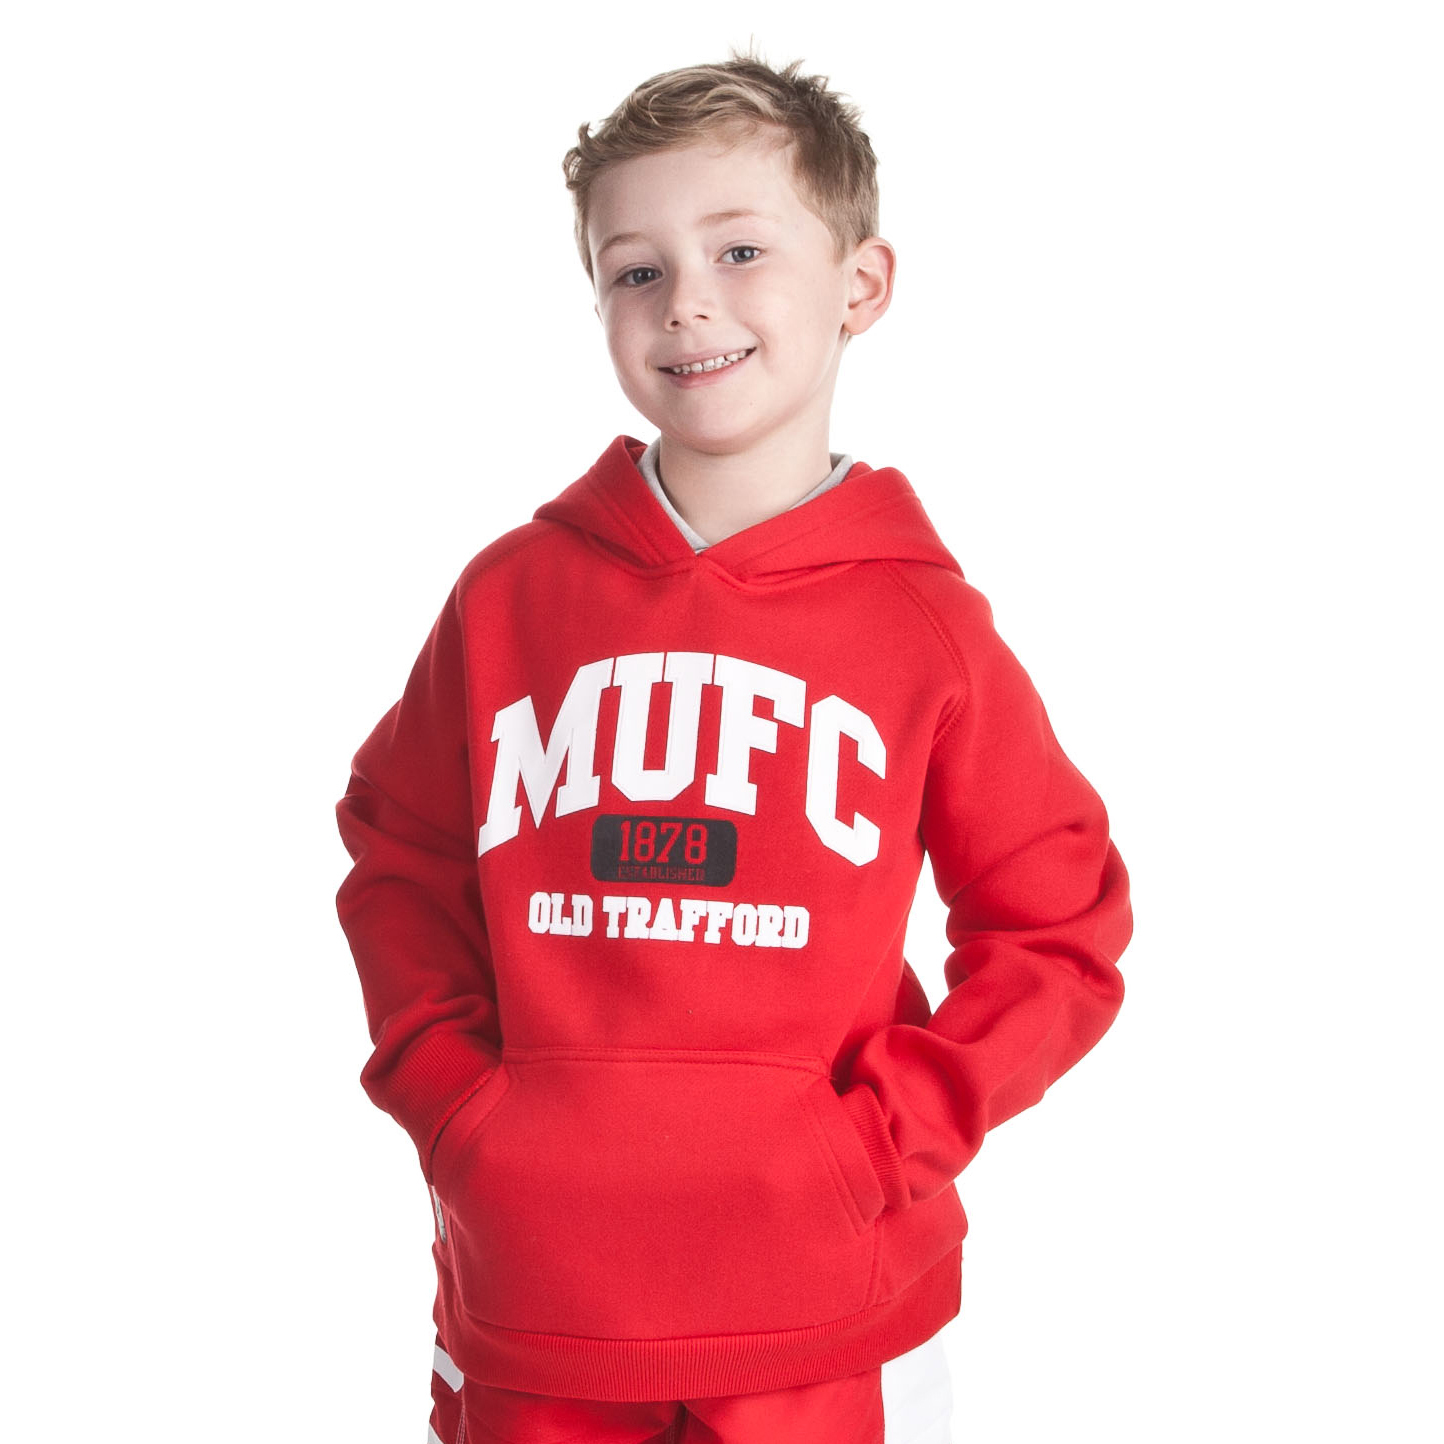 Manchester United 1878 Hoody - OT Red - Older Boys